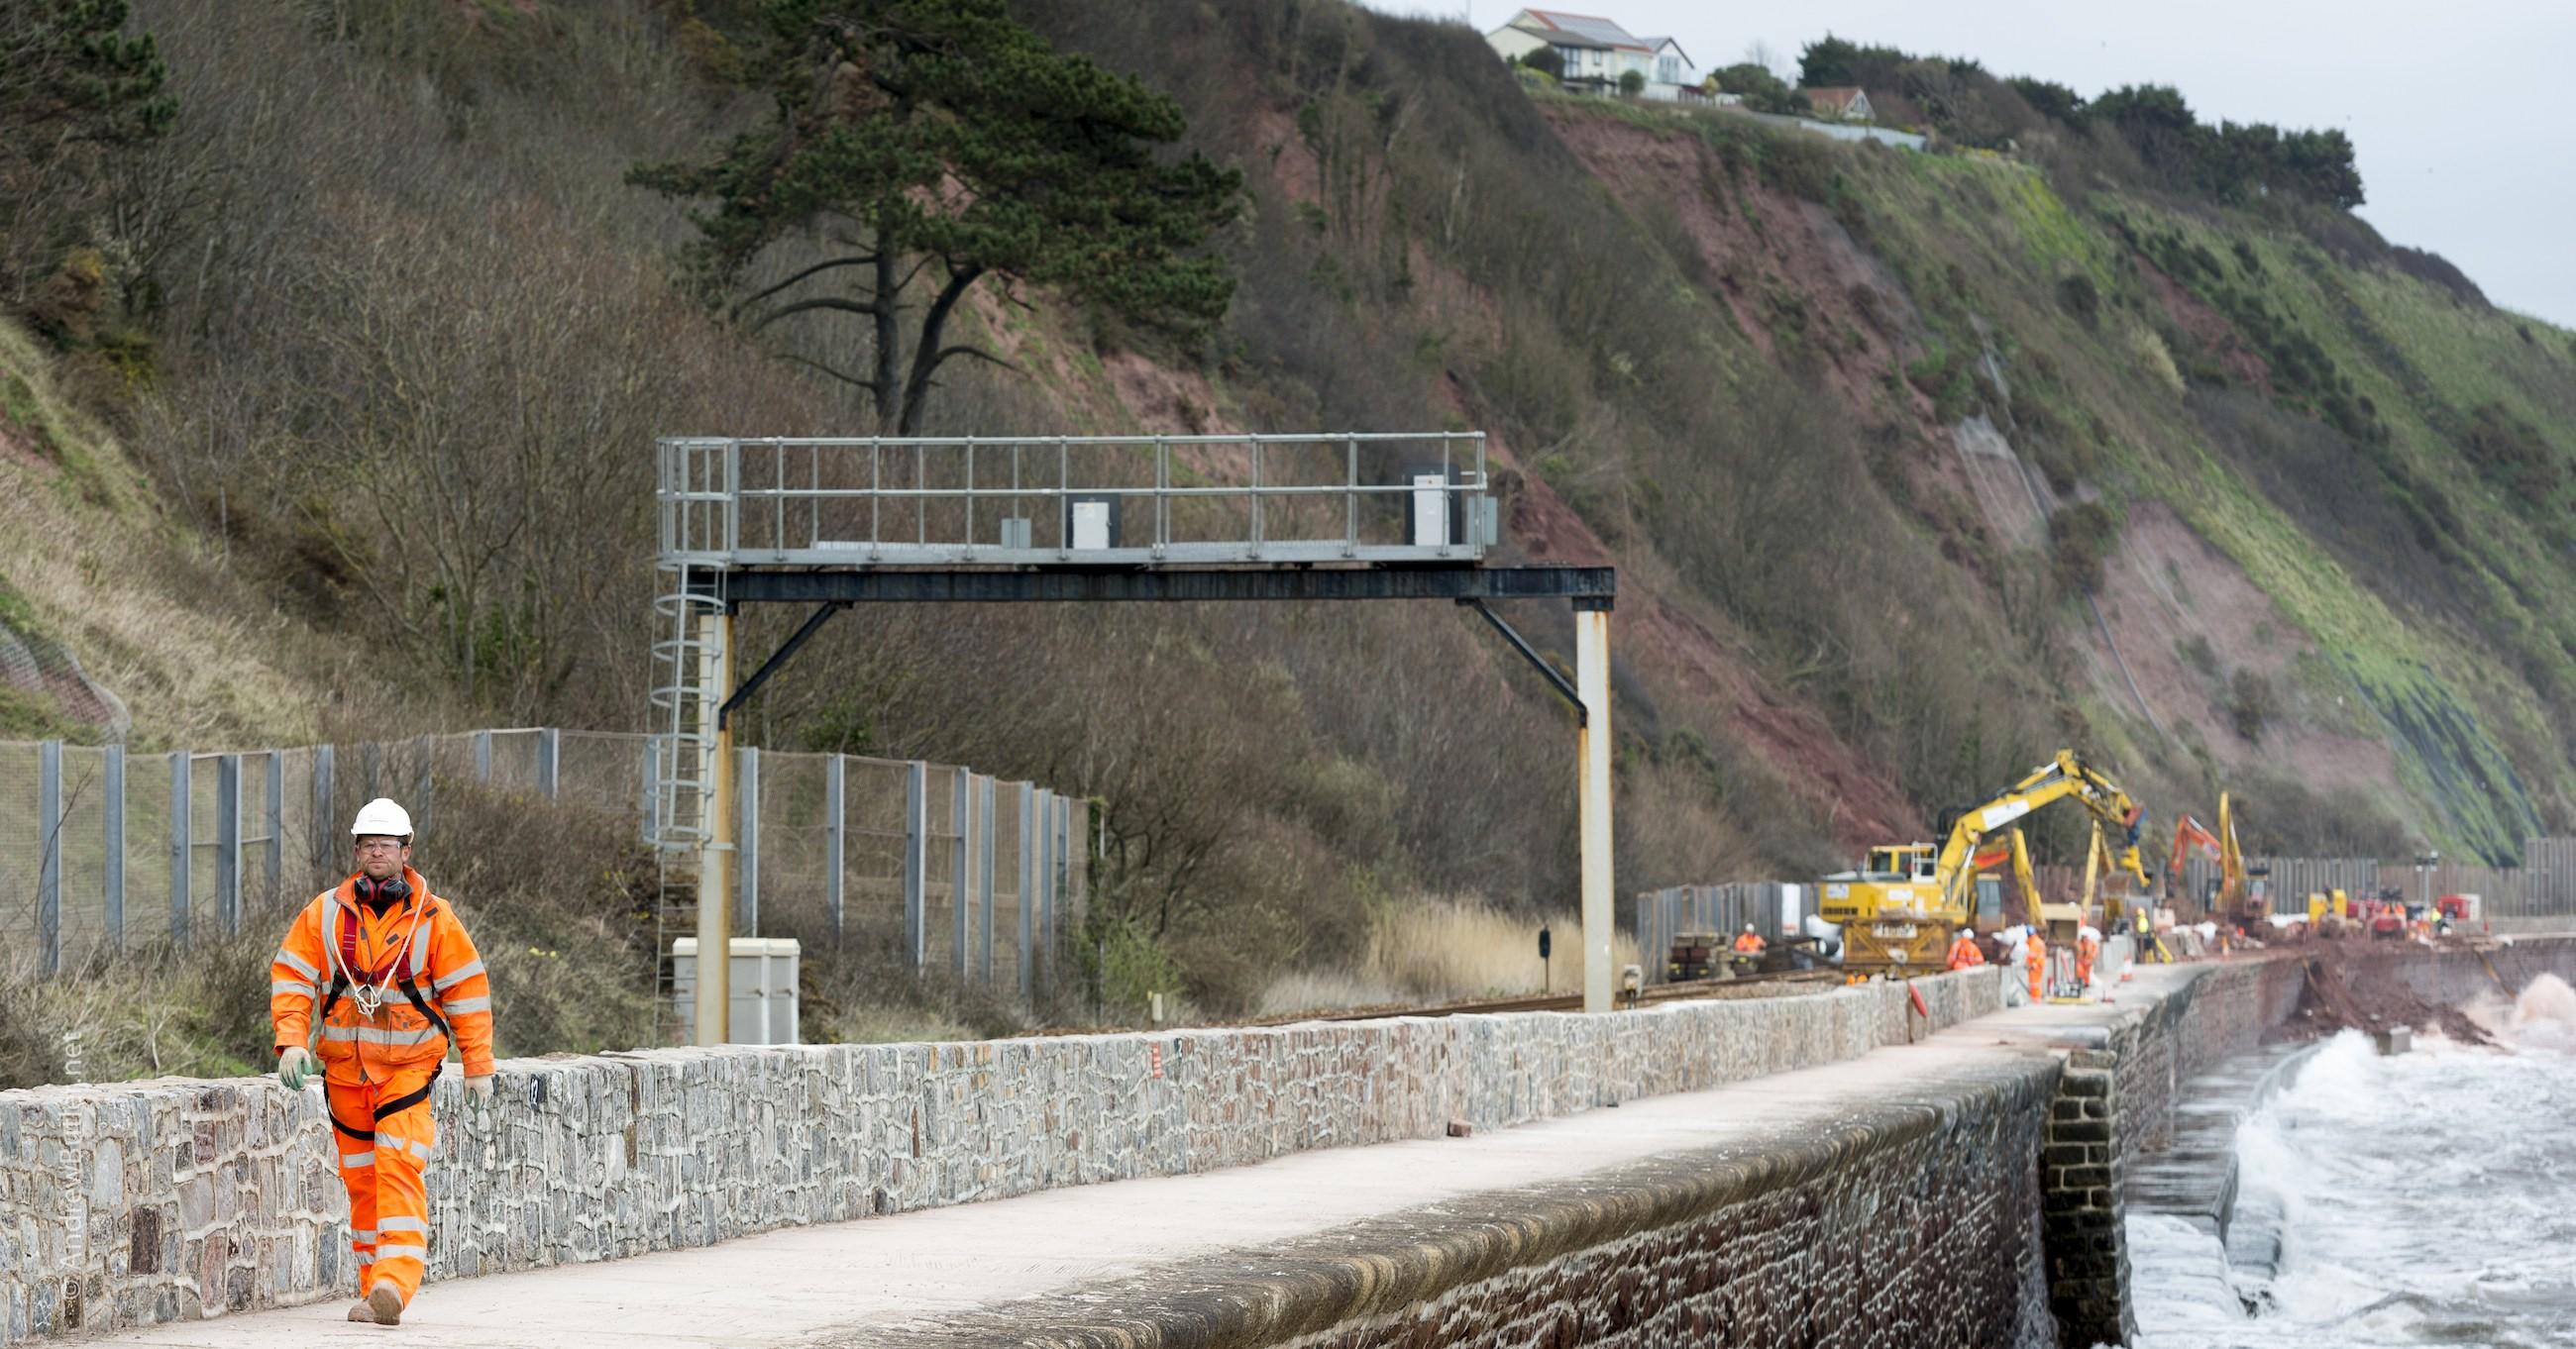 Teignmouth Flood Rail Works by Exeter Devon Commercial Industrial Construction Photographer - Andrew Butler